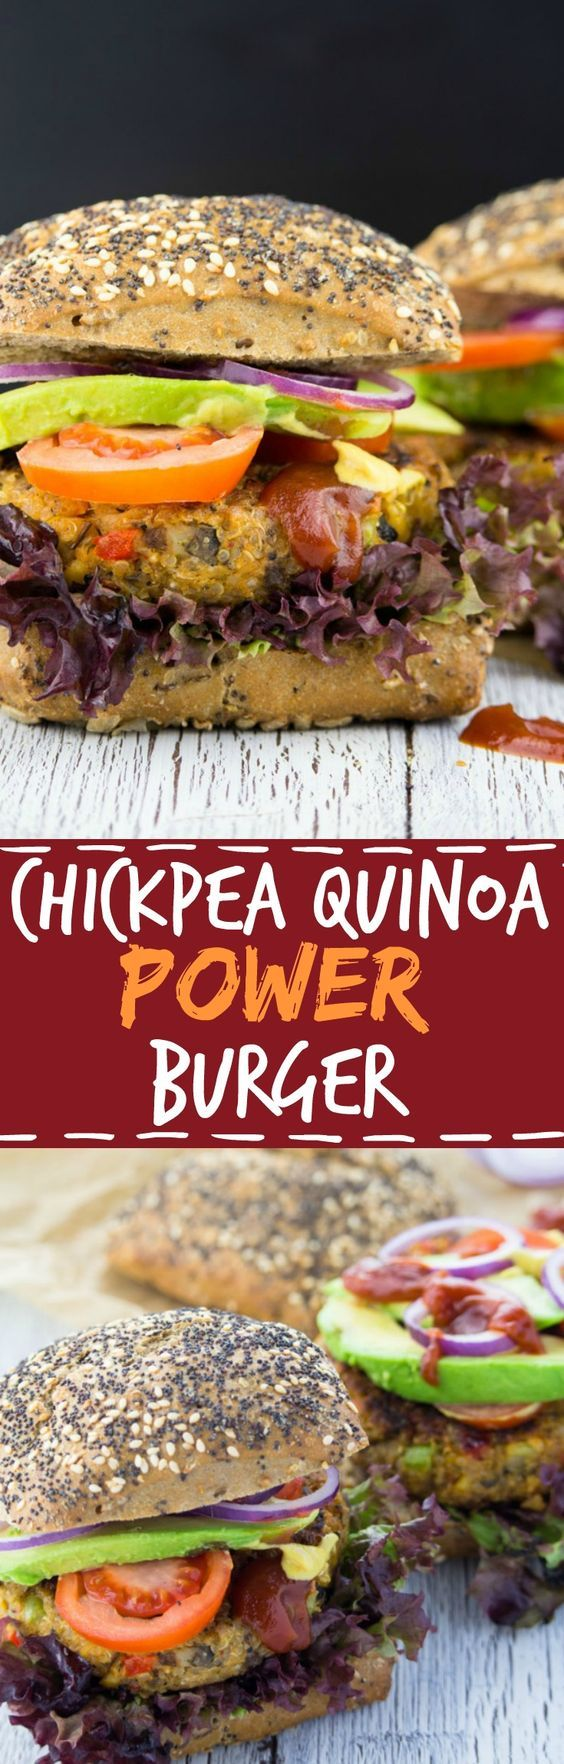 These vegan chickpea quinoa power burgers are packed with protein, veggies, and flavor! Vegan fast food at its best! #vegan #burger #quinoa #healthy #quinoaburger #recipes #veganfood